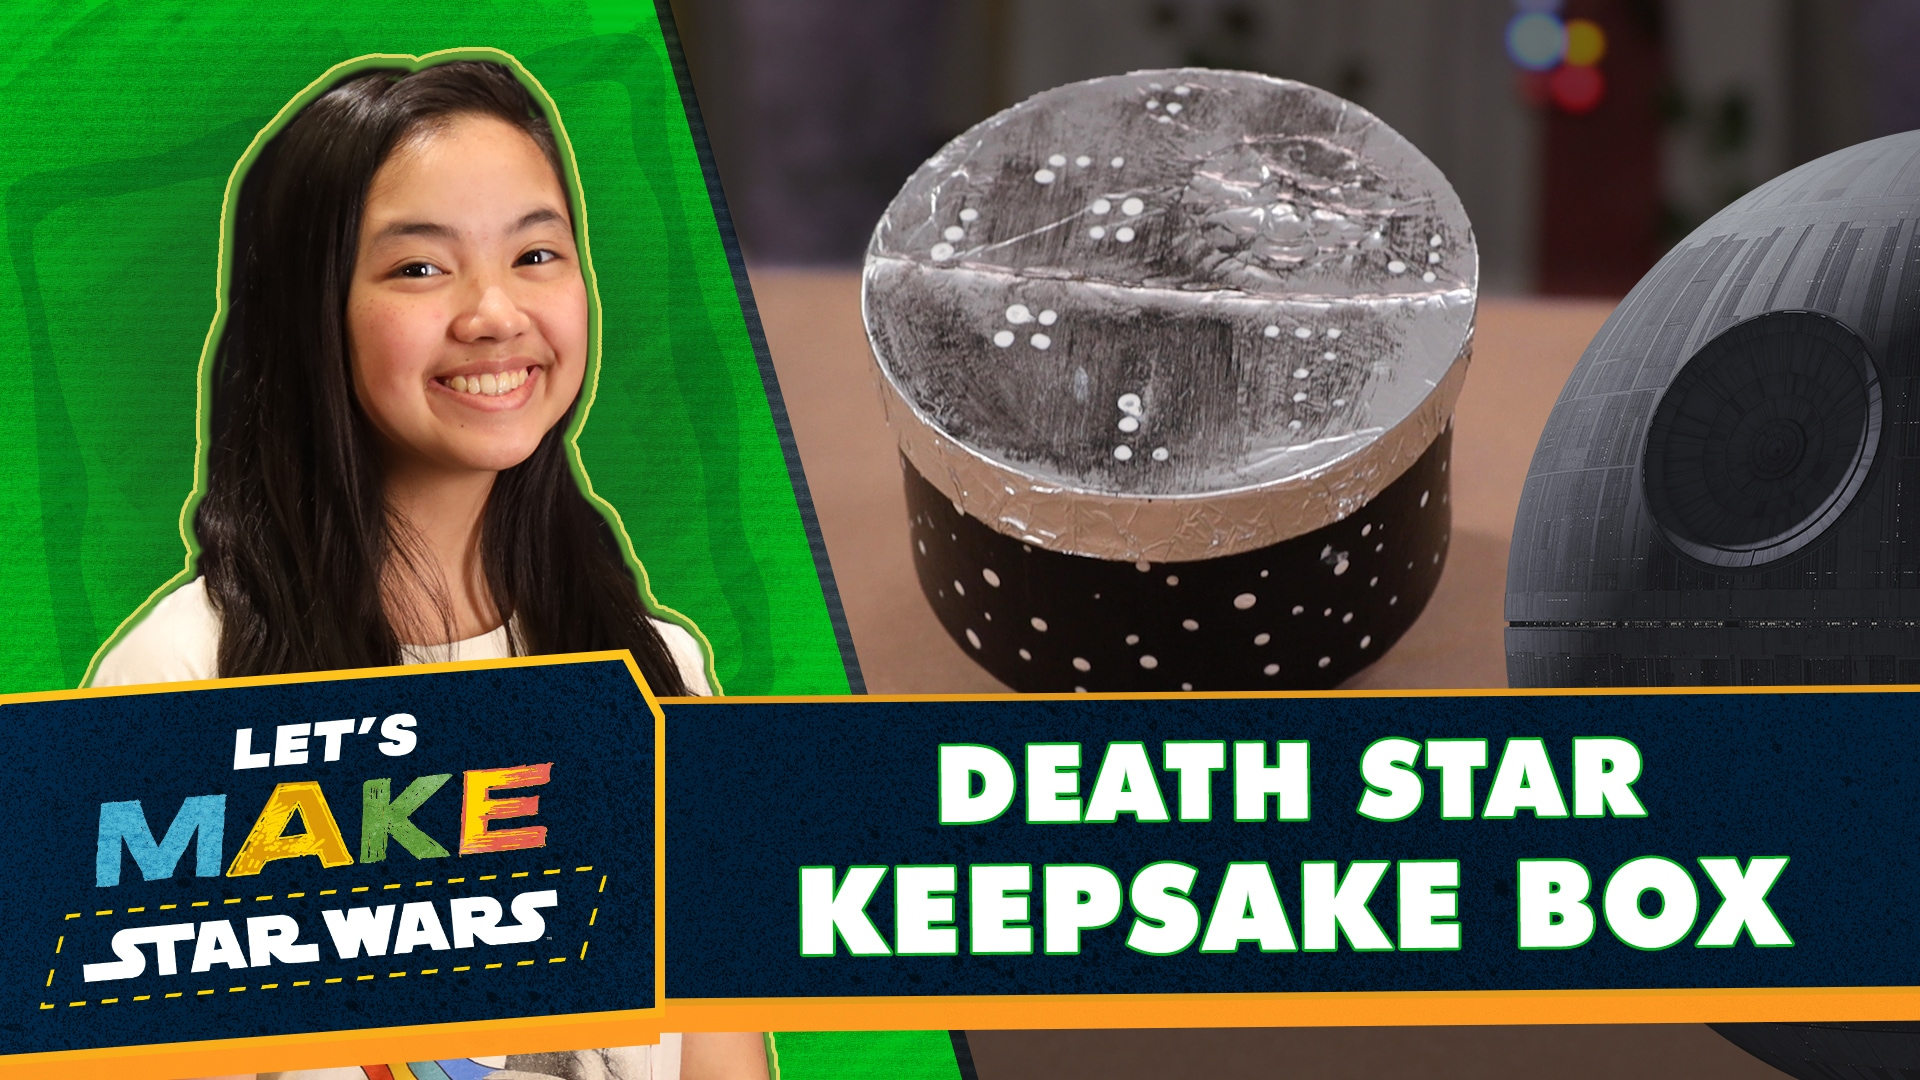 Let's Make Star Wars - How to Make a Death Star Keepsake Box